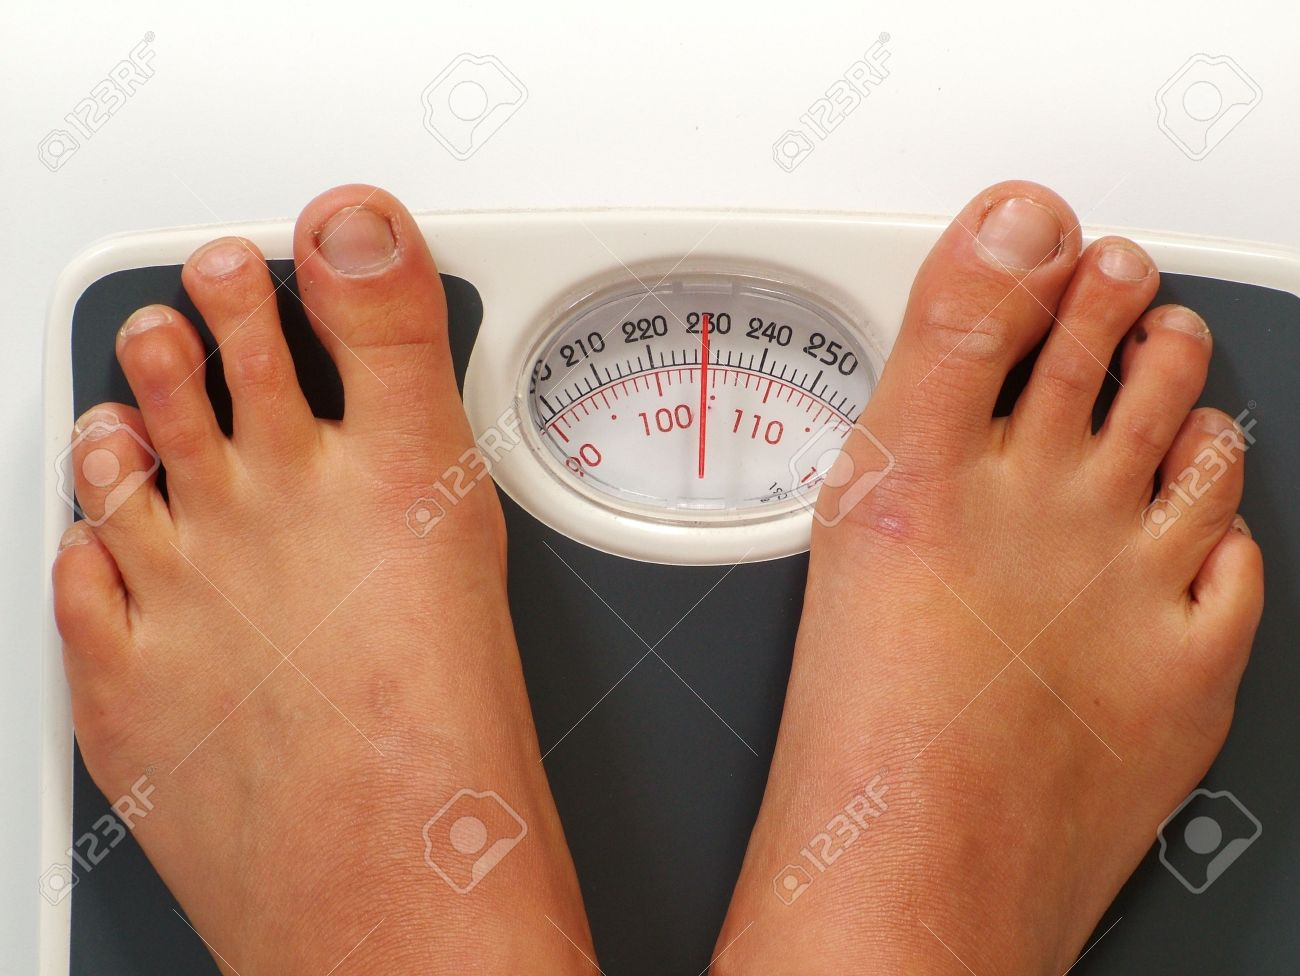 Ugly feet standing on measuring scales with a weight of 230 pounds/104